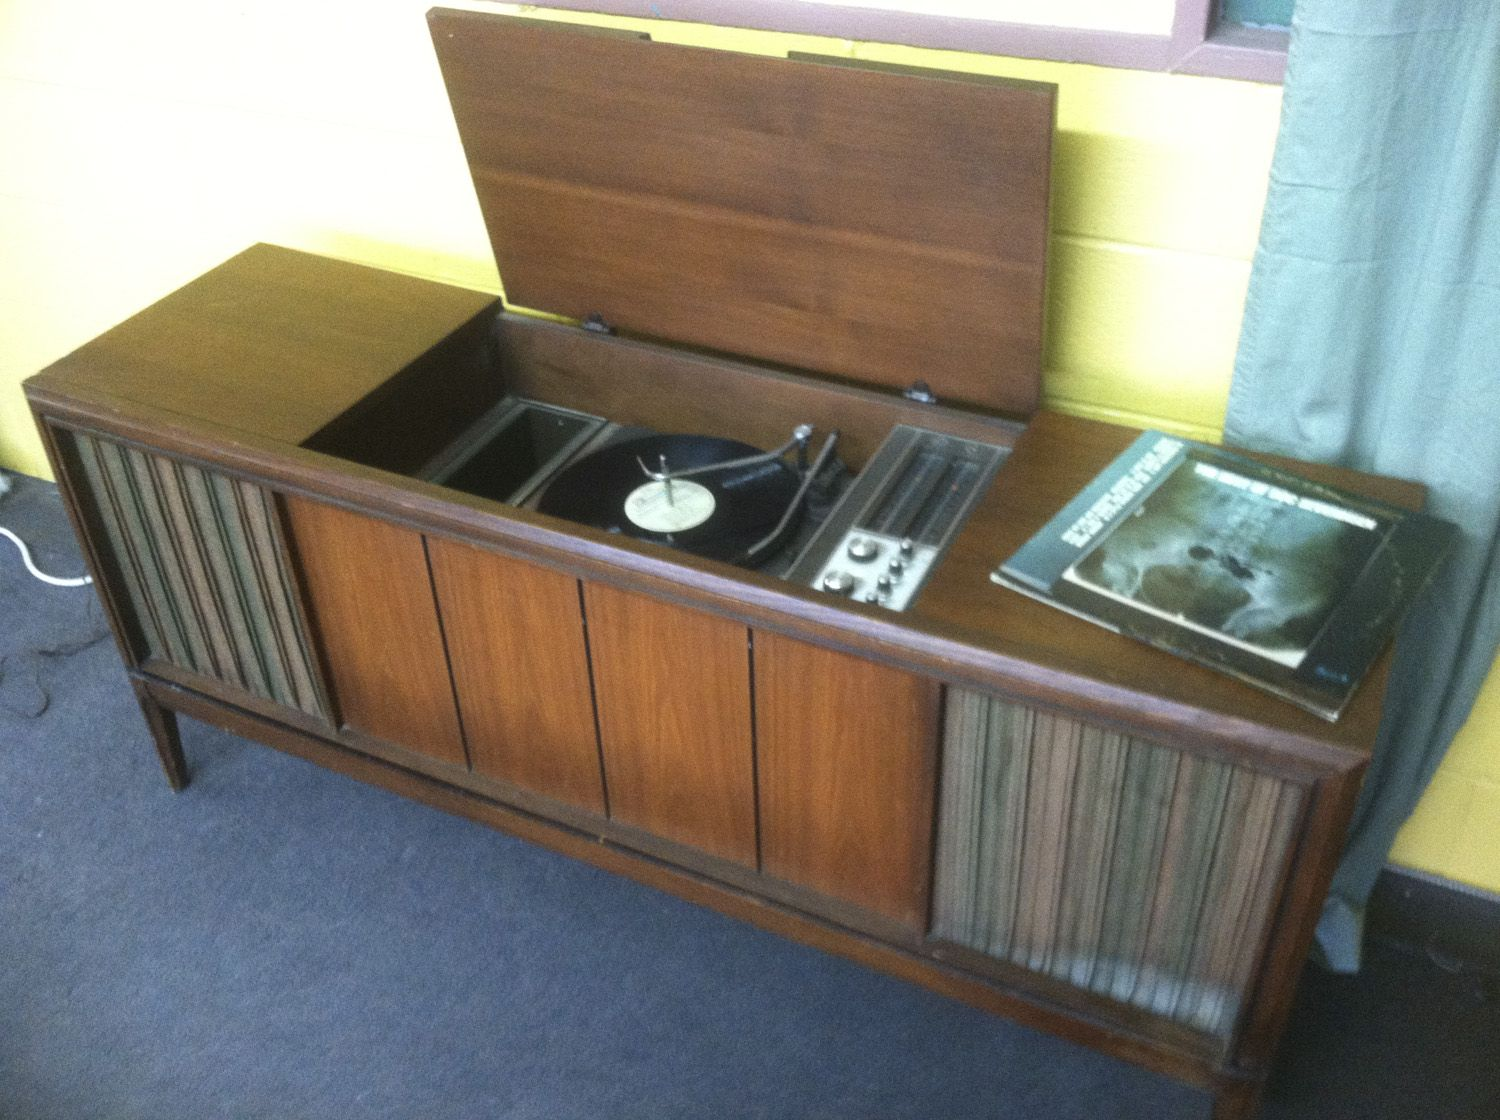 Platenspeler Meubel Need To Find An Old Record Player Motorola Console